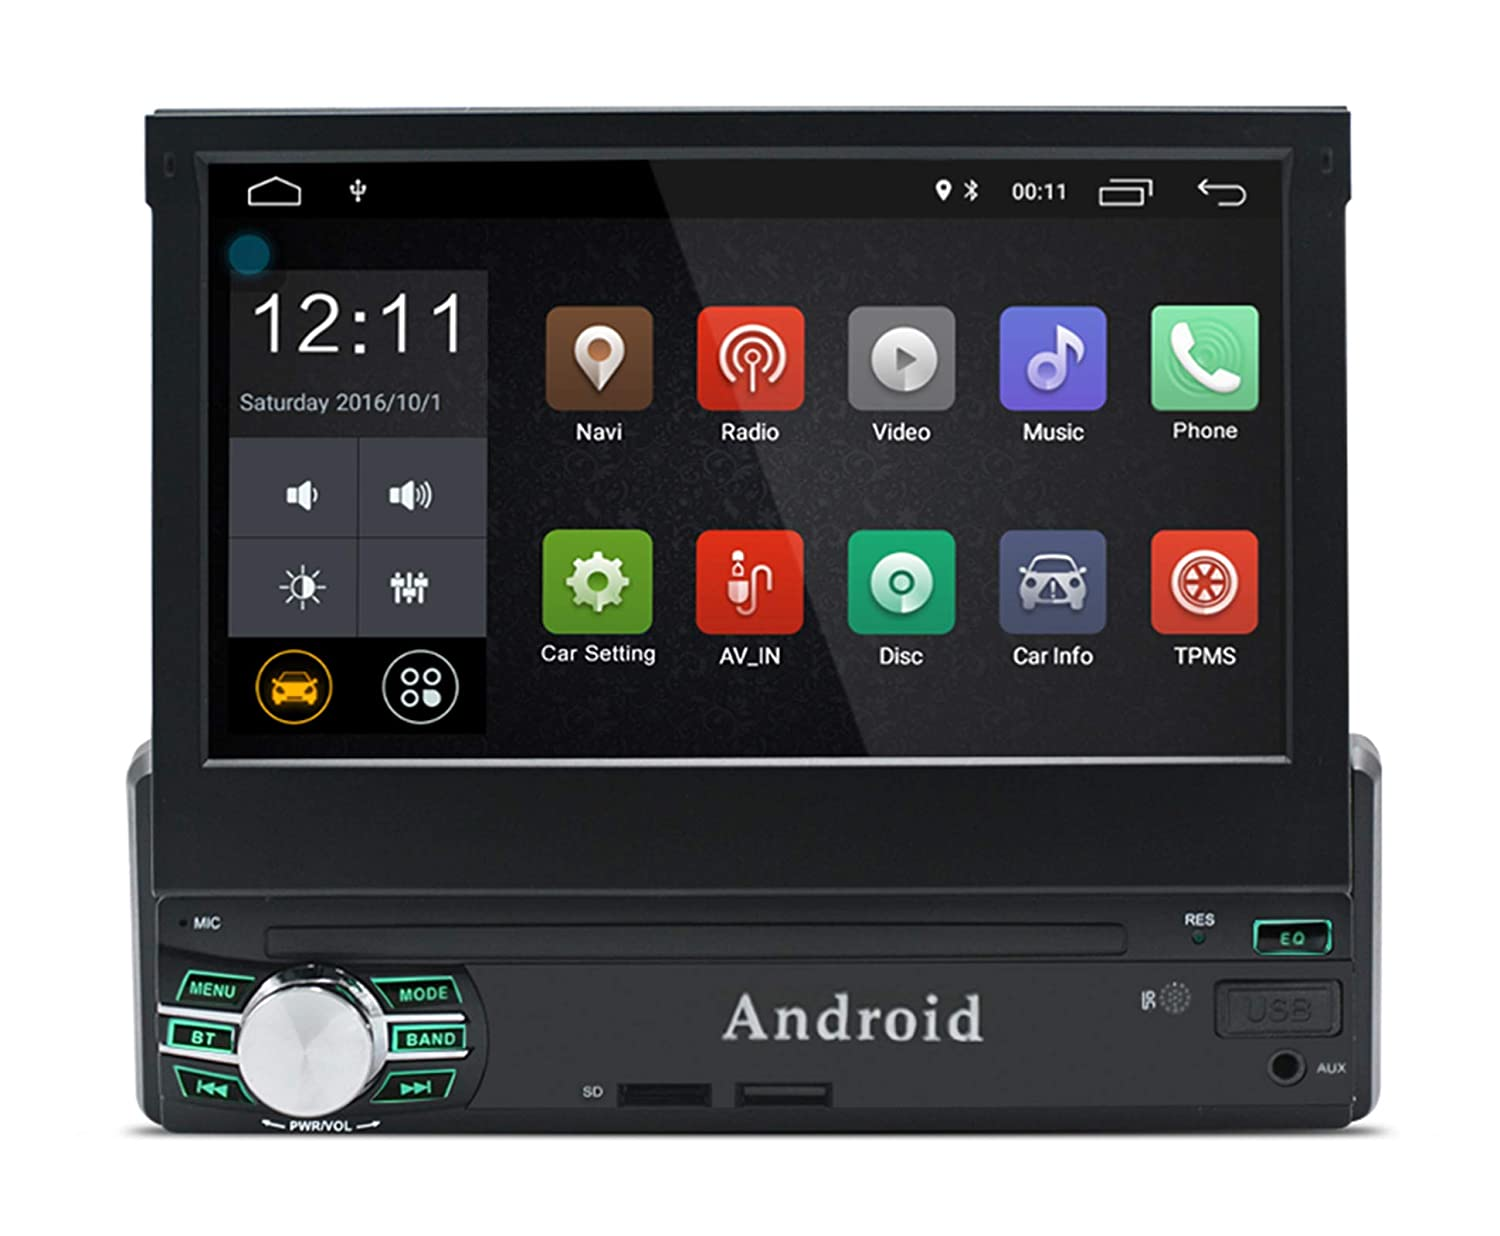 Lexxson Andorid 8.0 single Din 7 inch Car Stereo Touch Screen GPS Navigation in-dash Bluetooth Car Radio support AM FM RDS Wifi Hands Free Multimedia Player